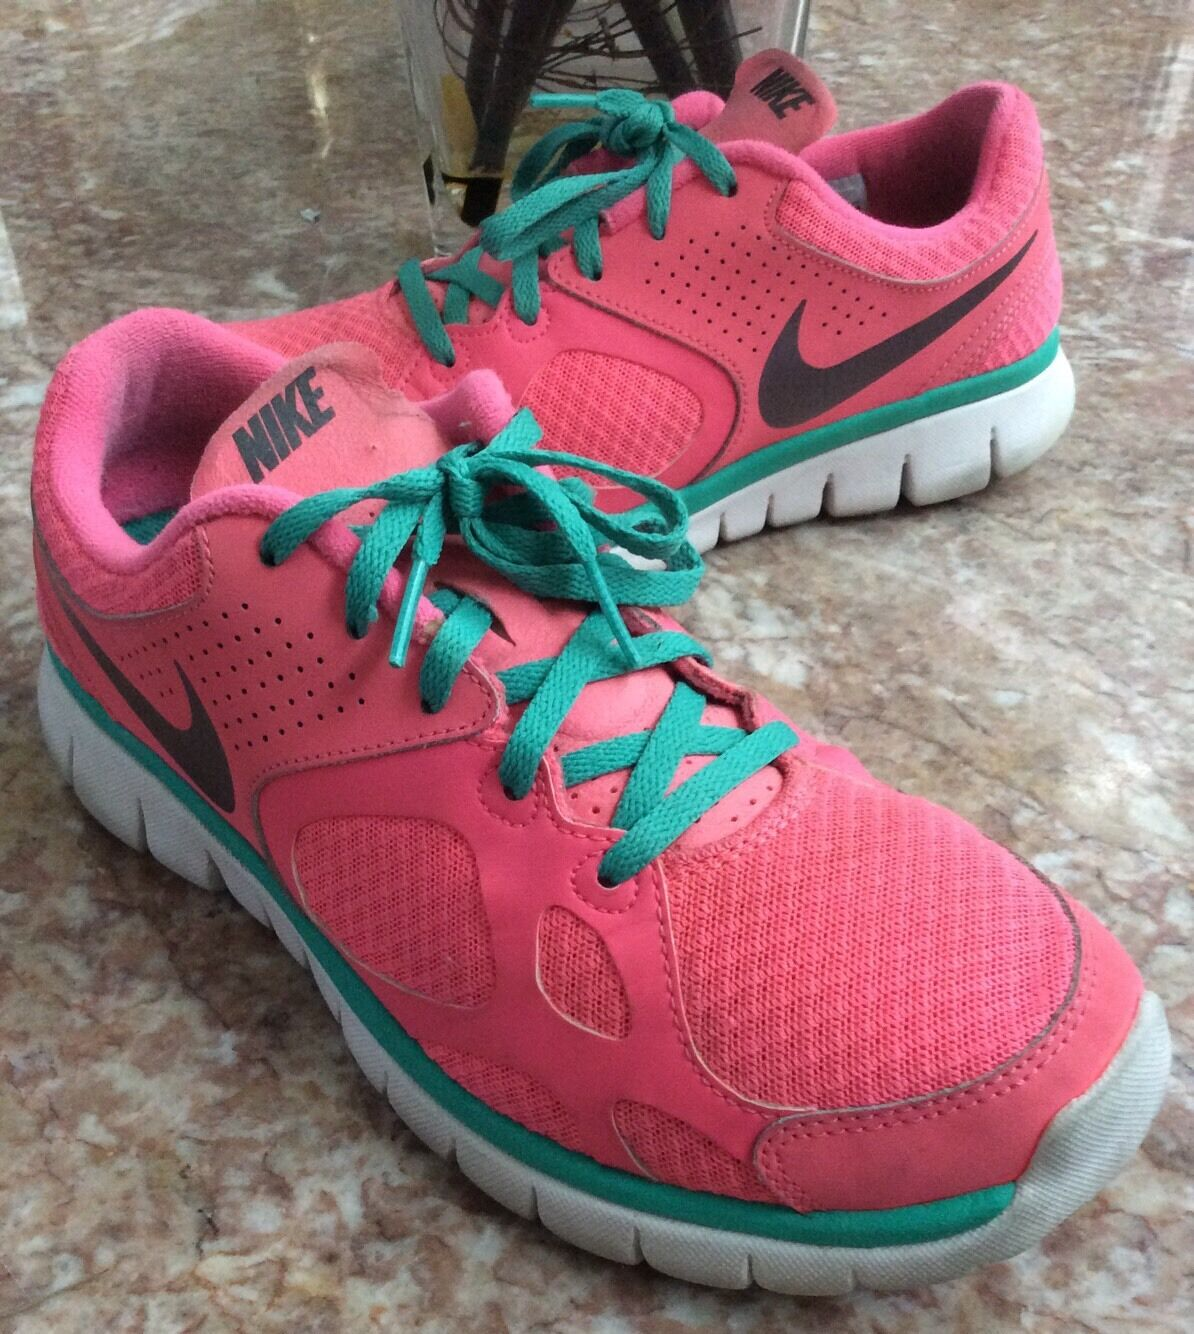 Nike Flex Run Women's Pink/Green Athletic Running Shoes Comfortable Comfortable and good-looking